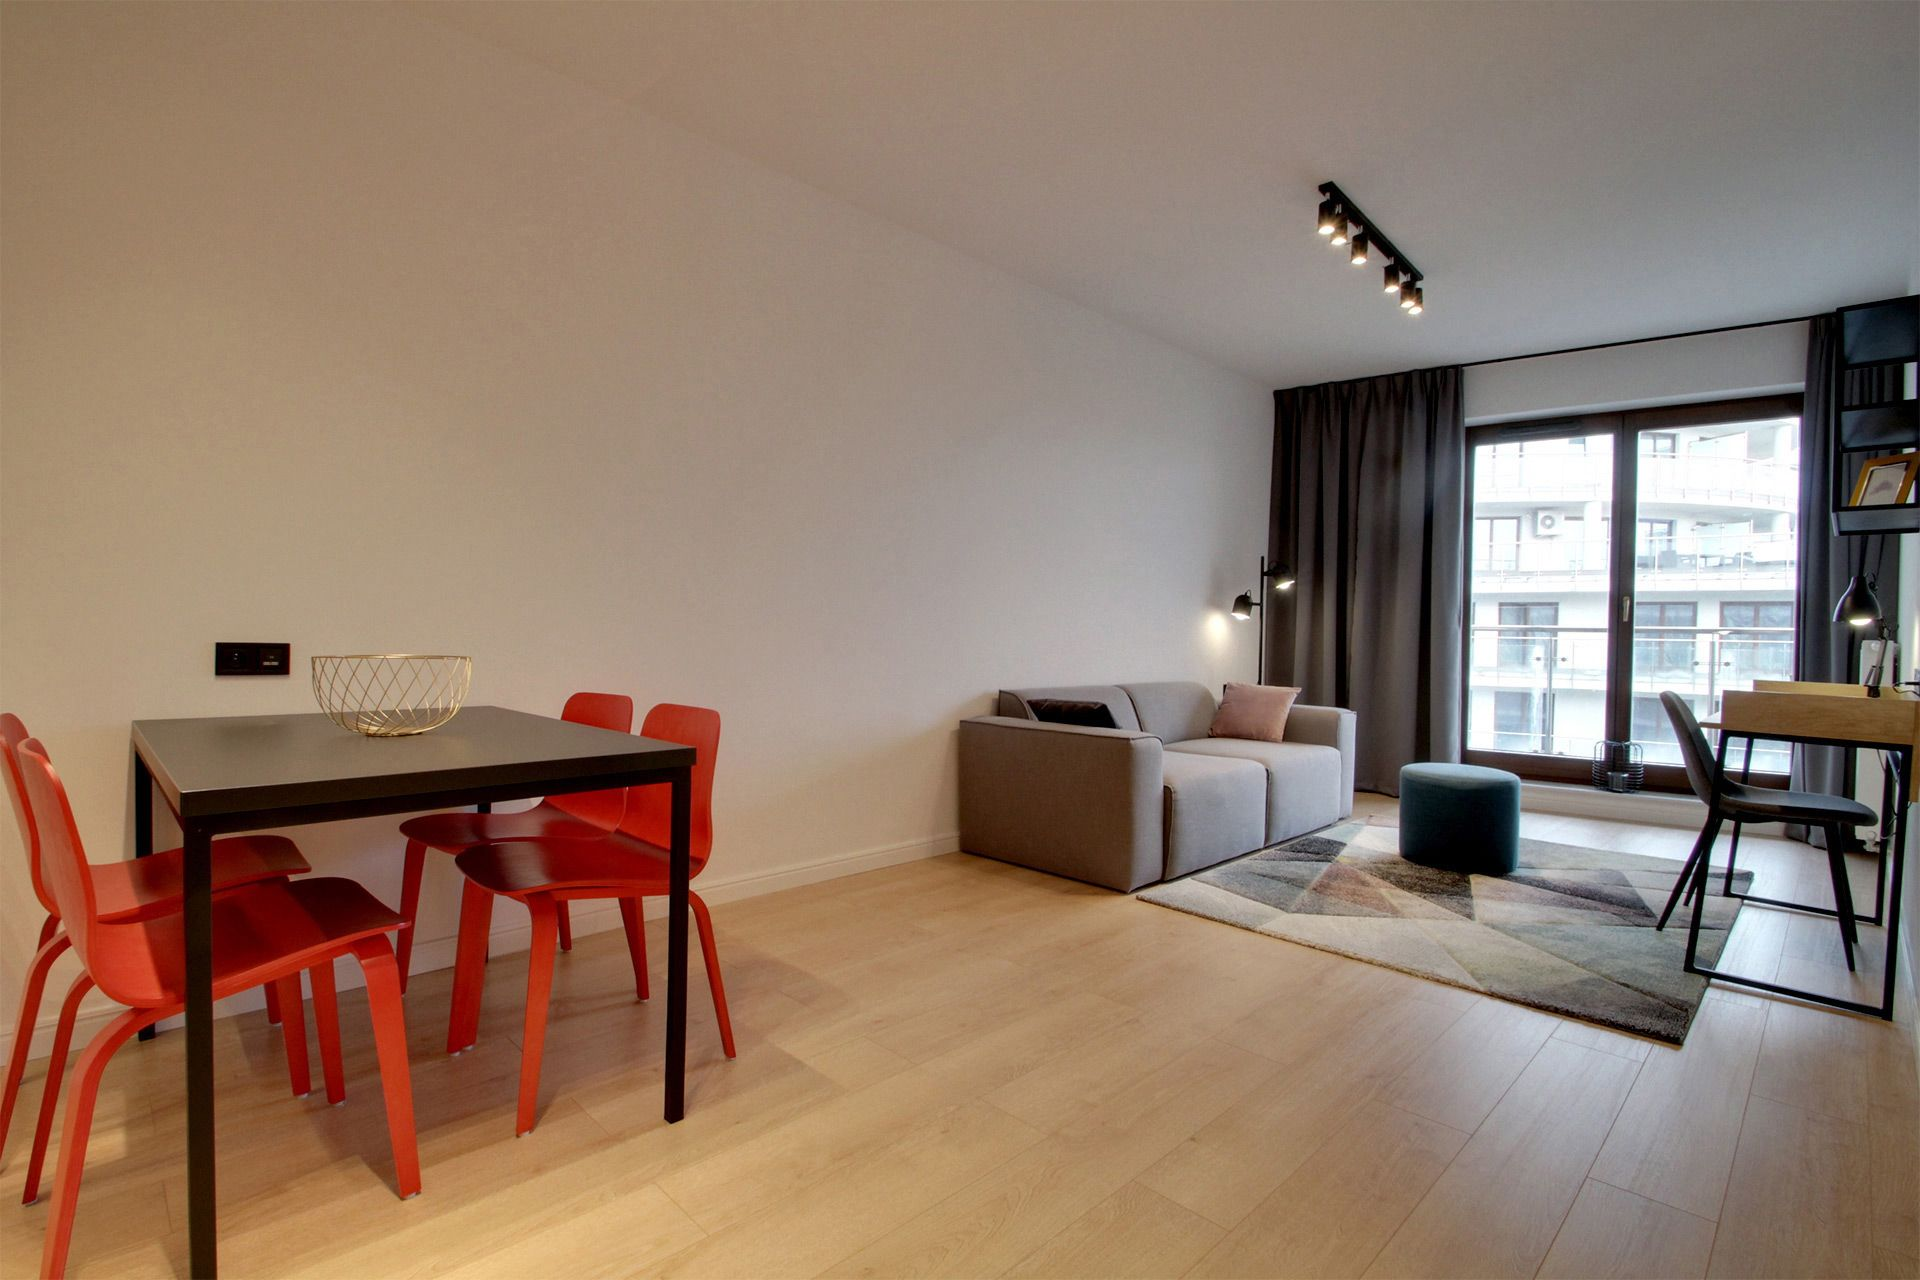 1 Bedroom - Large apartment to rent in Warsaw UPR-A-041-1